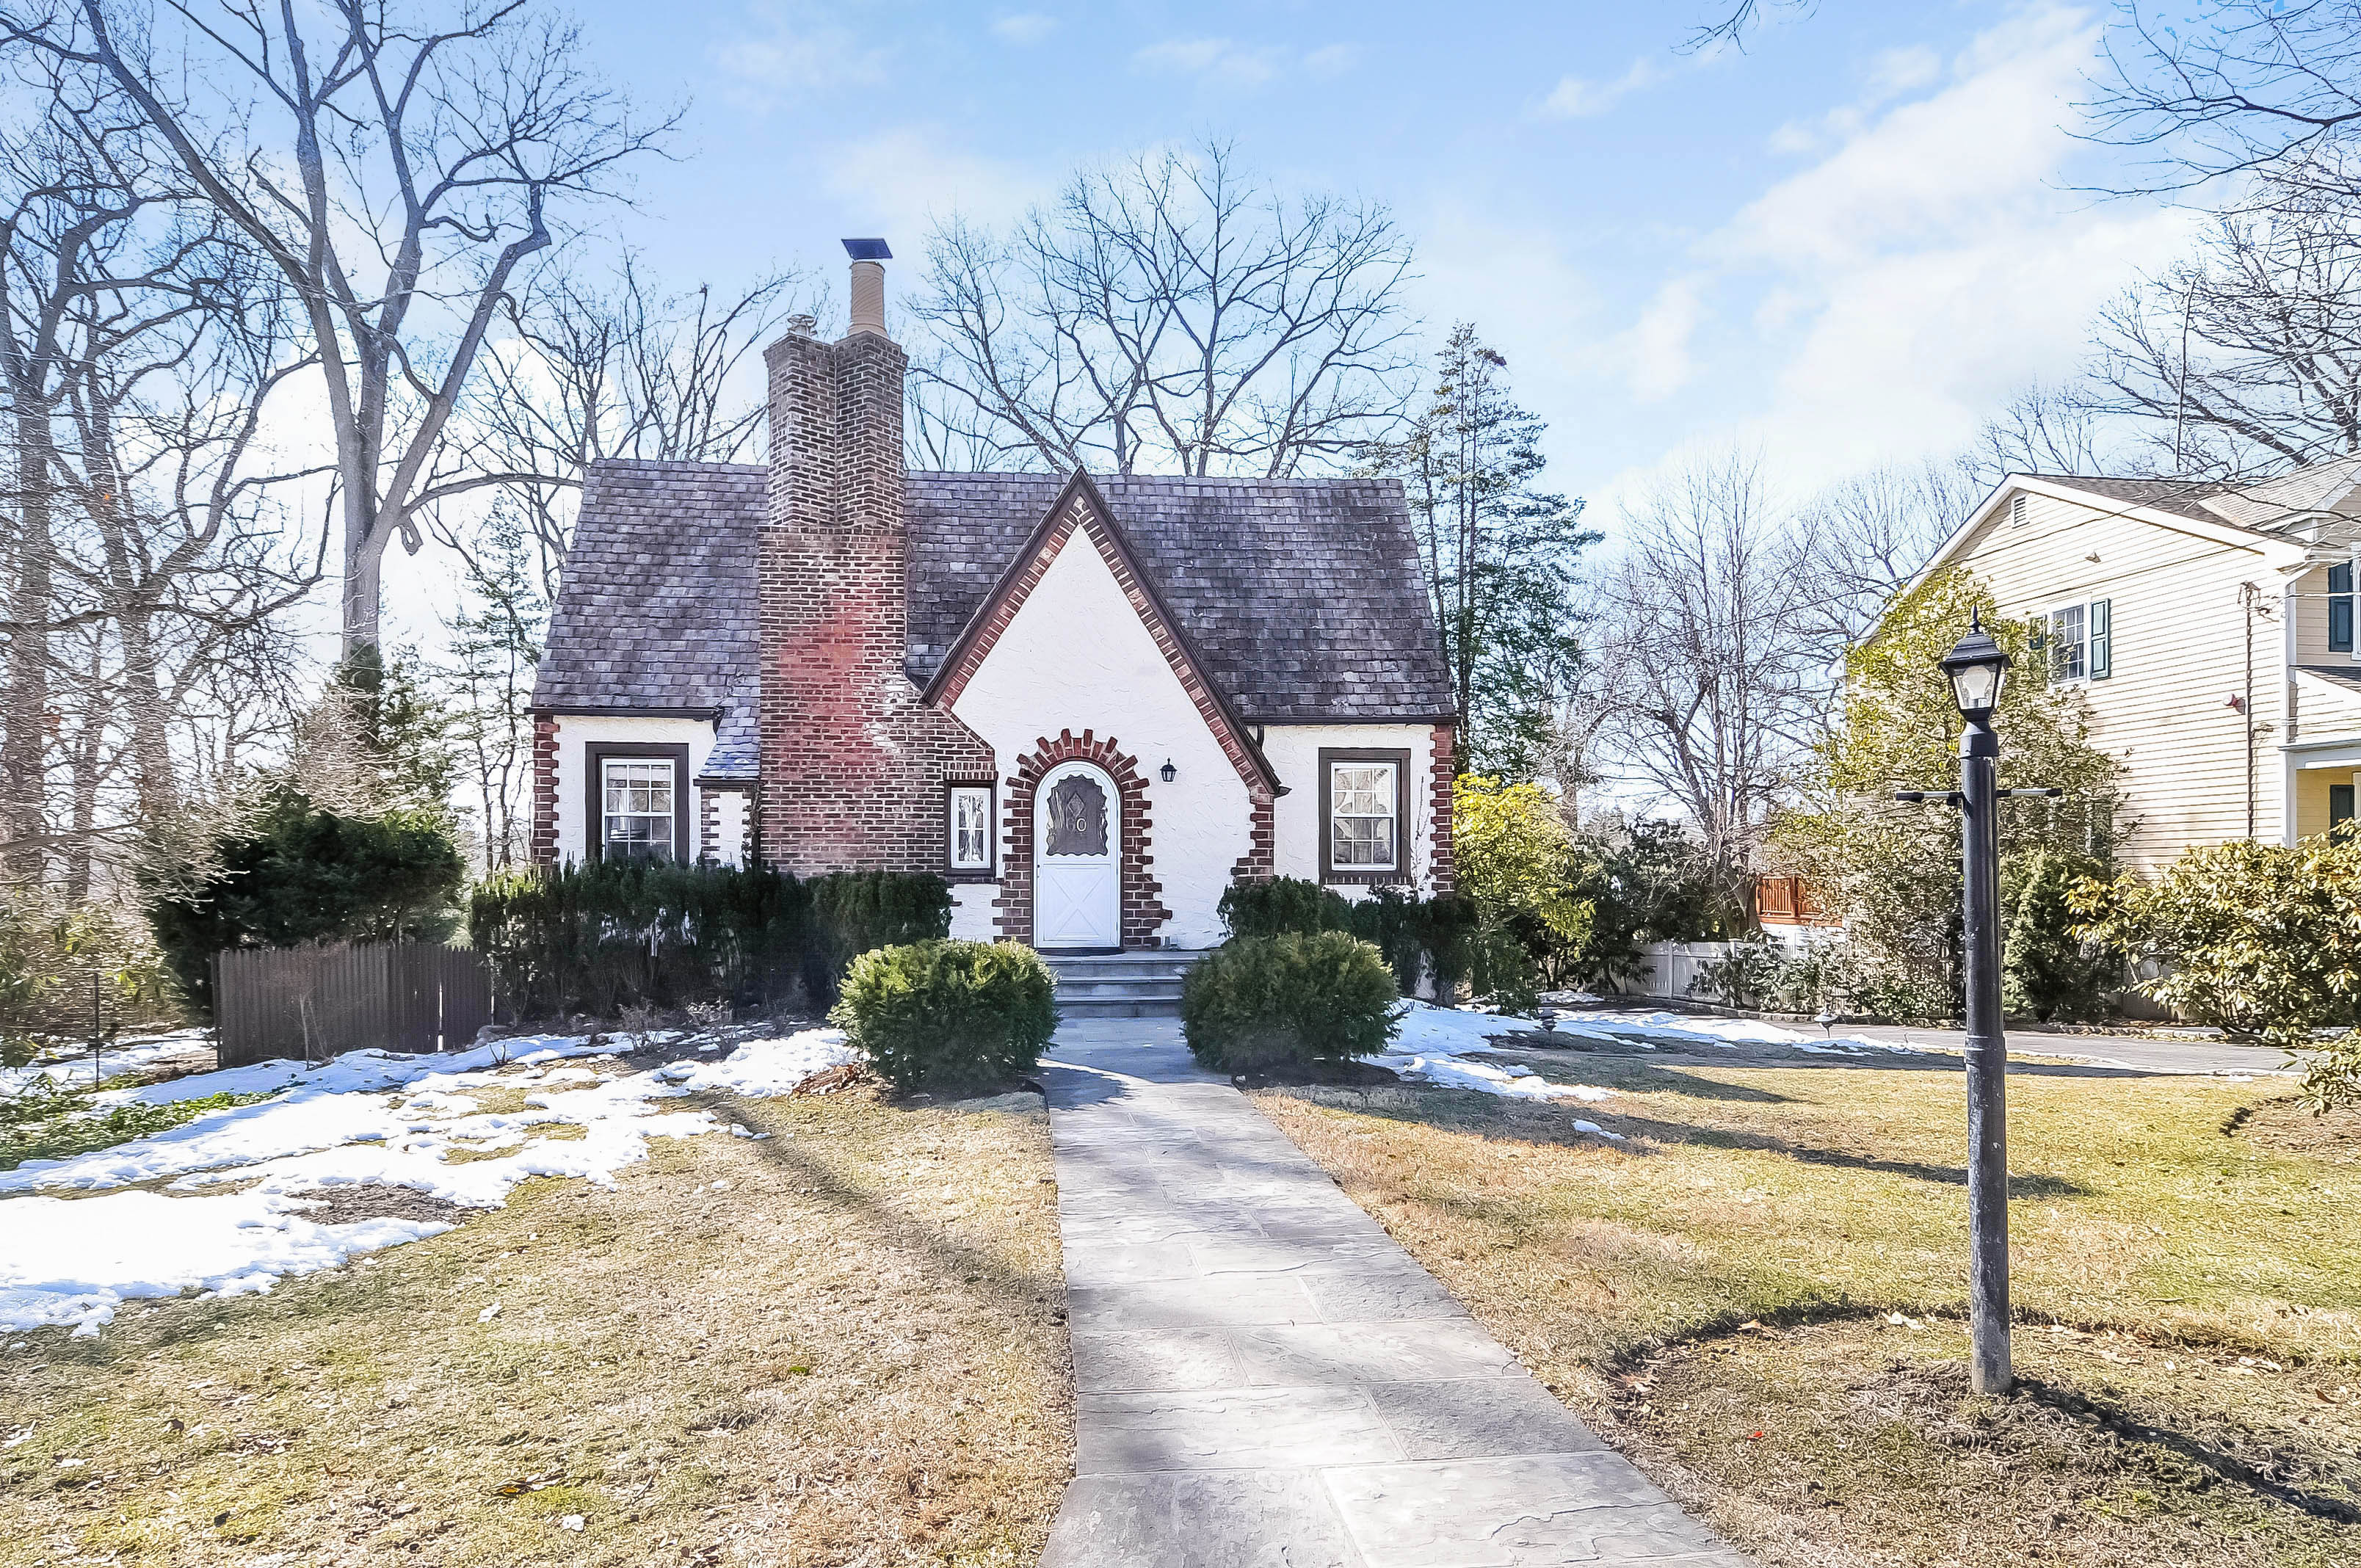 Single Family Home for Sale at Sunny and Charming Tudor 60 Carthage Road Scarsdale, New York 10583 United States